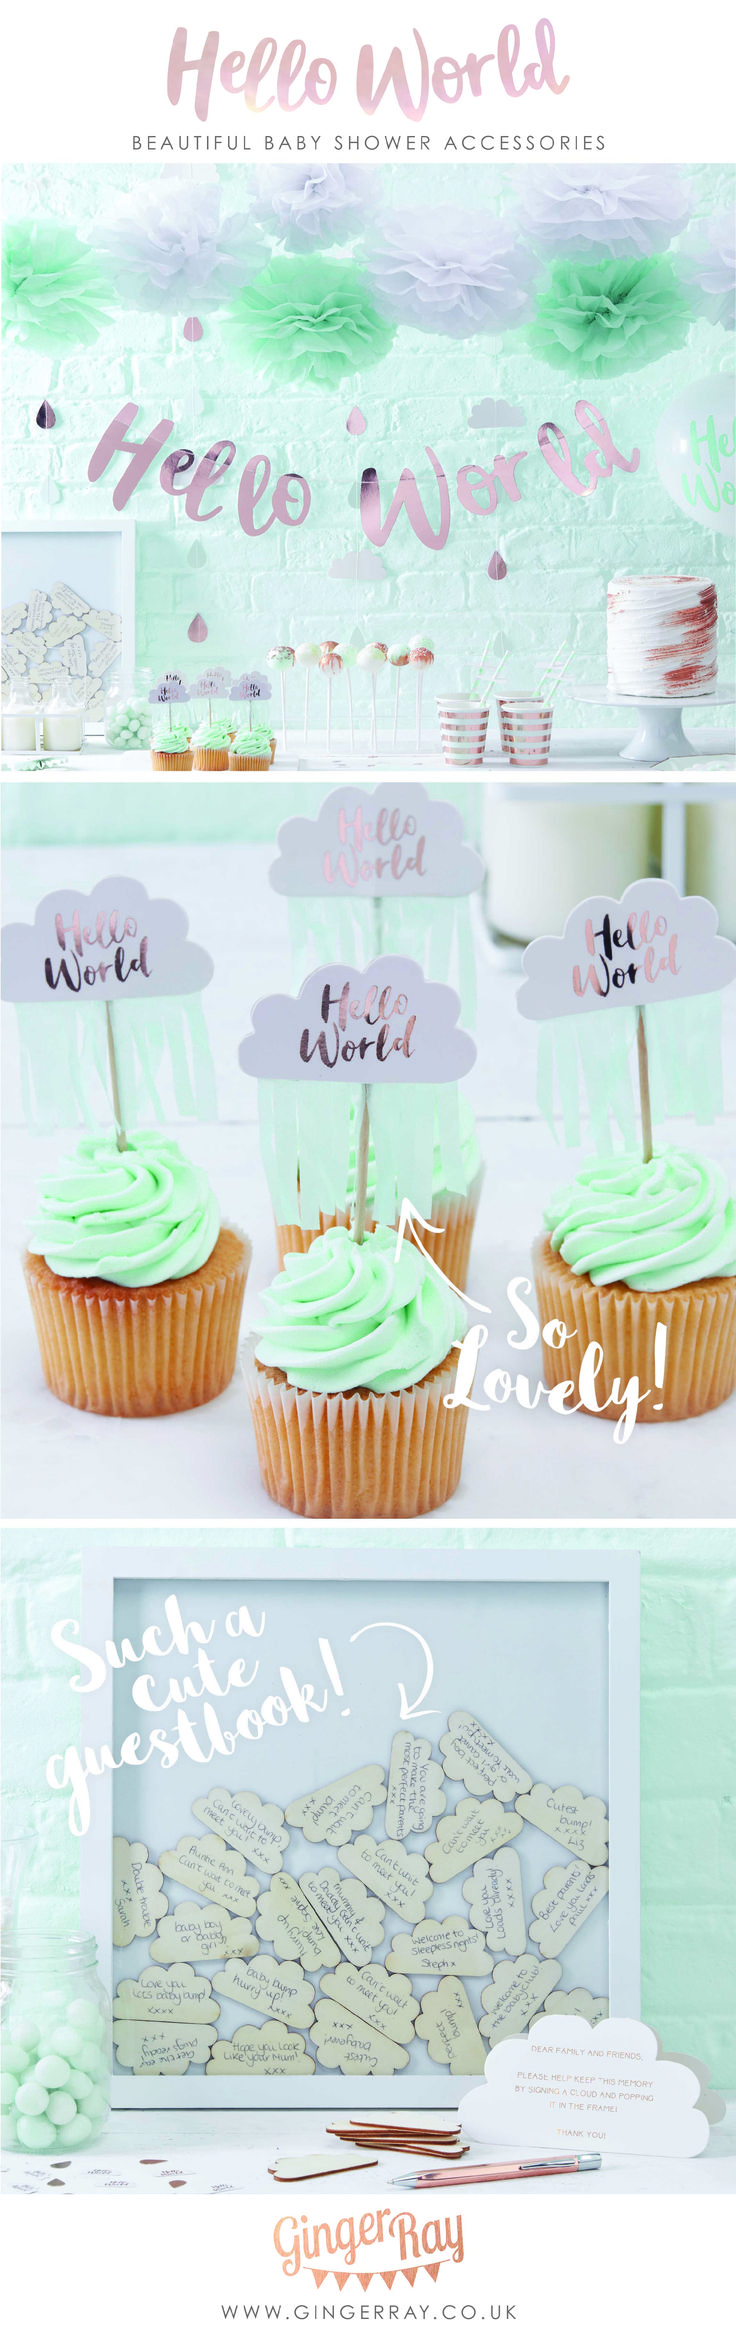 Baby scrapbook ideas uk - Find This Pin And More On Baby Shower Ideas